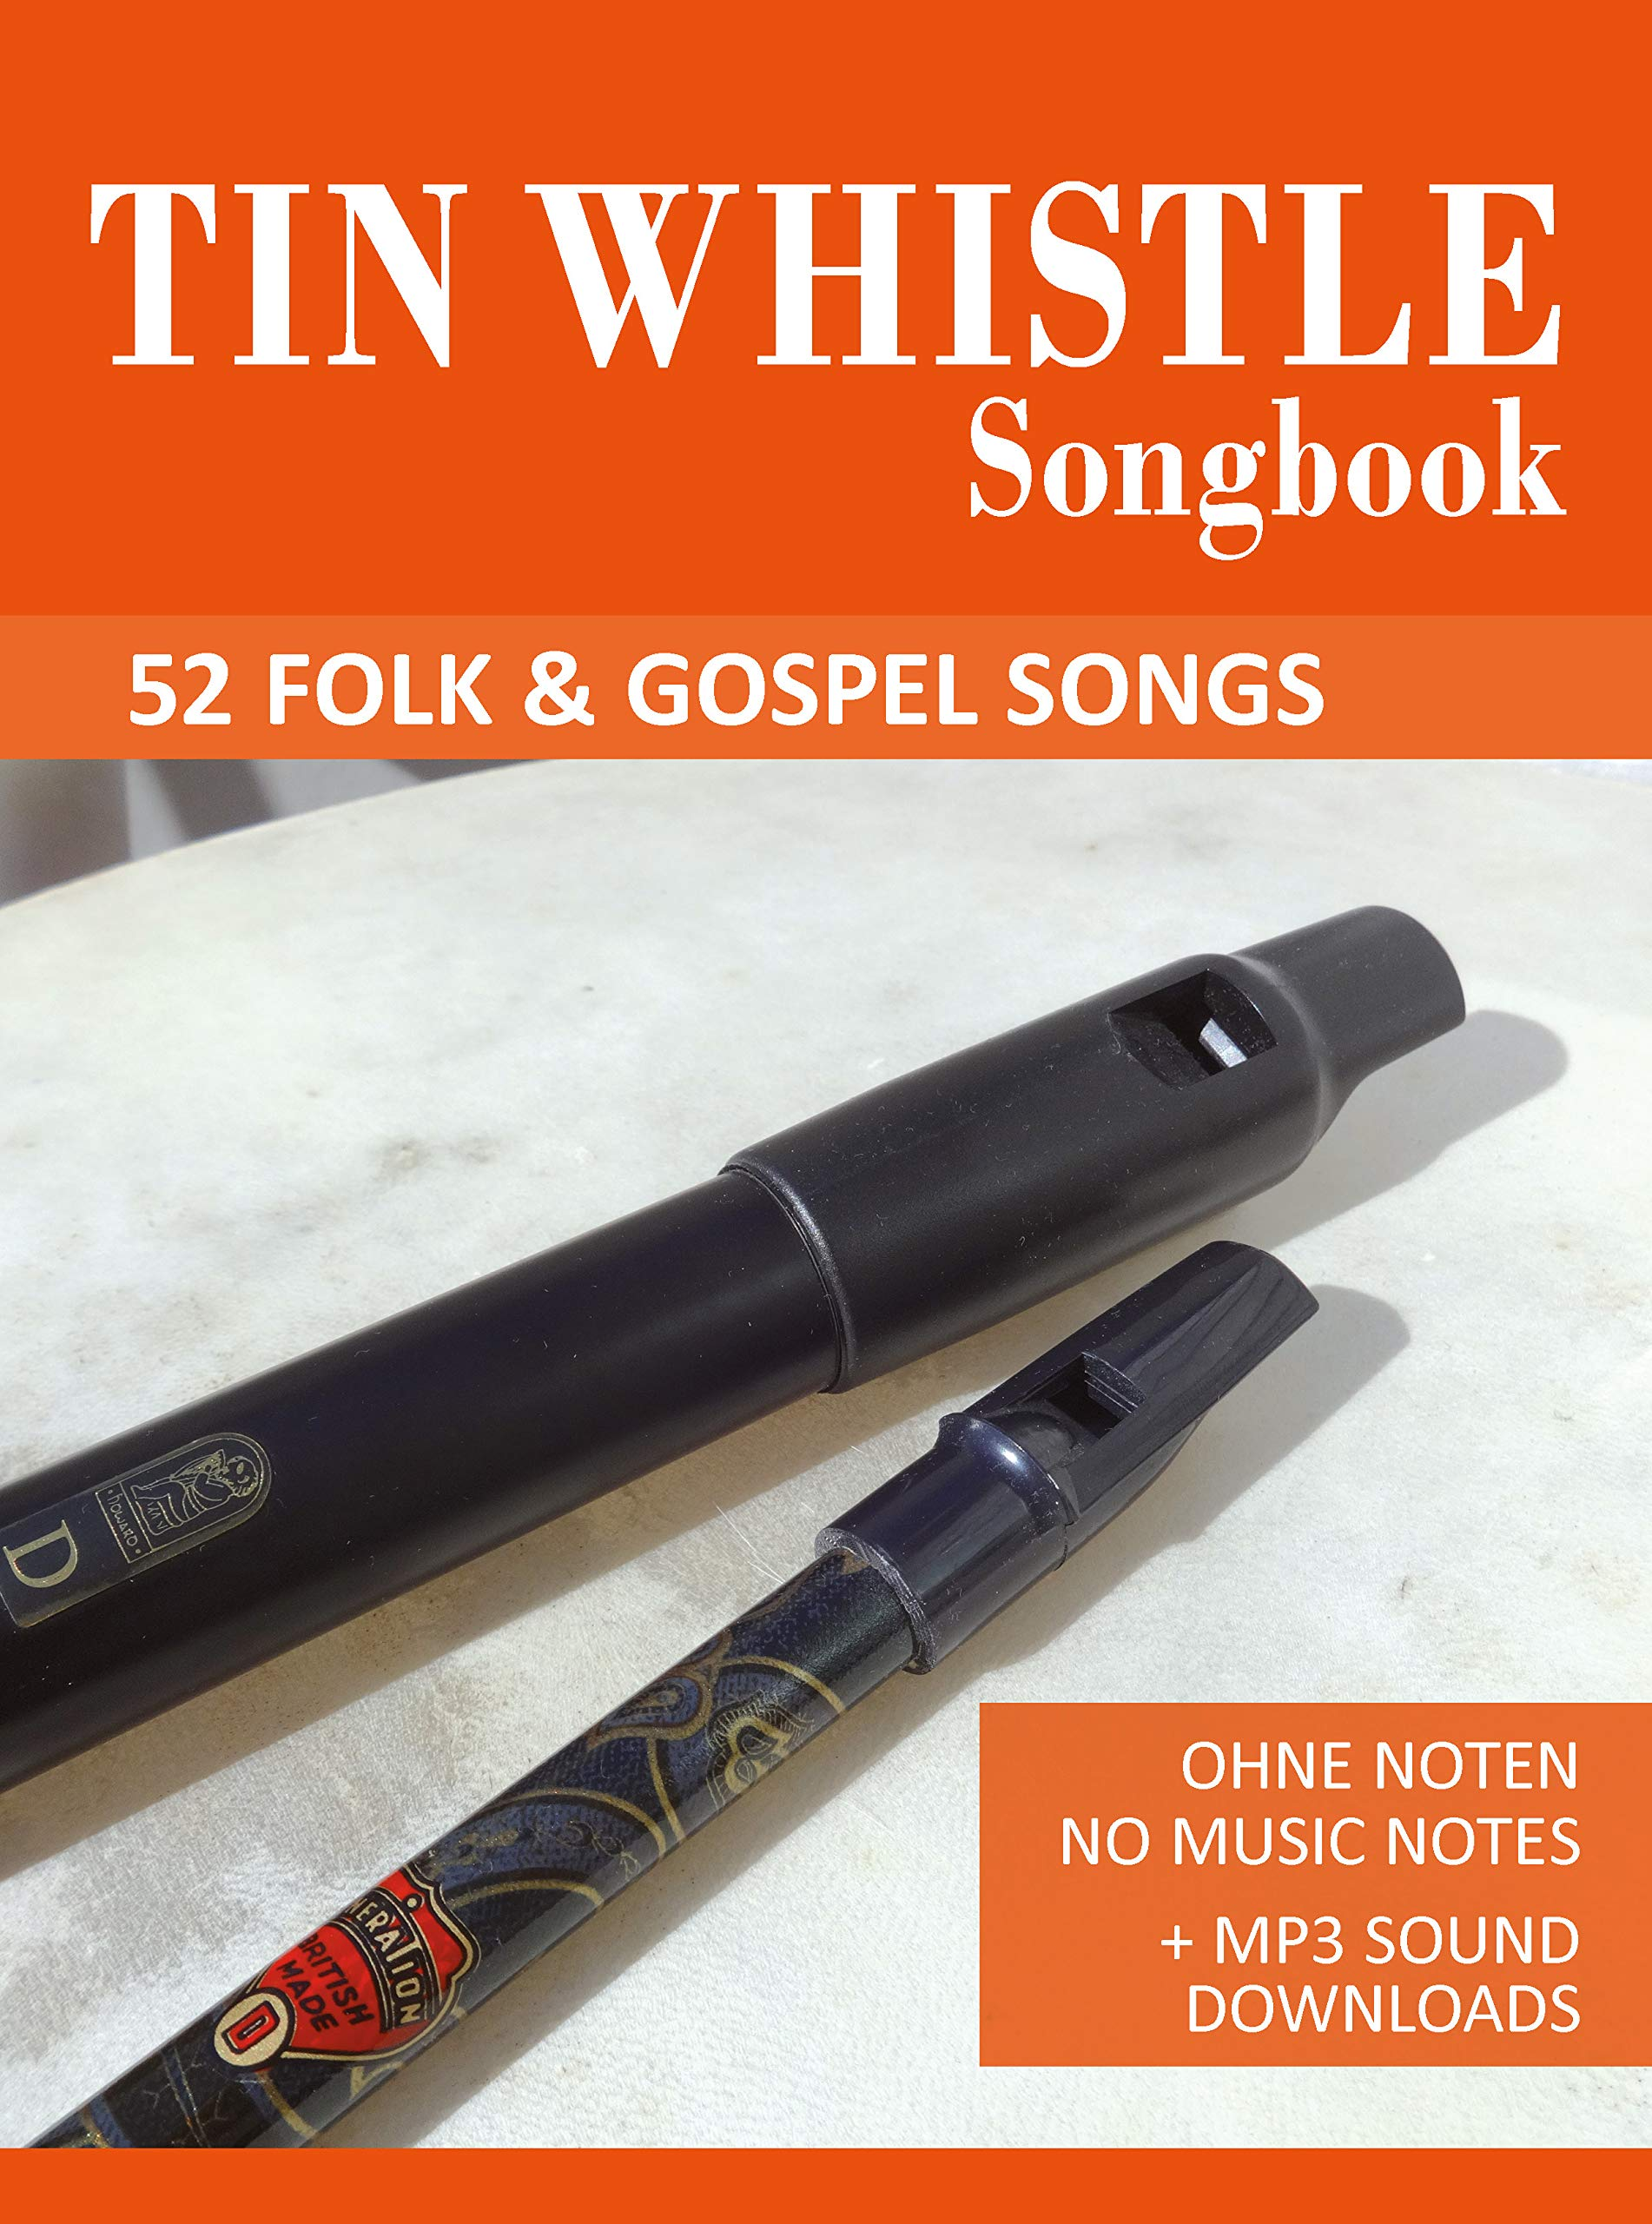 Tin Whistle Songbook - 52 Folk & Gospel Songs: Ohne Noten - No Music Notes + MP3 Sound Downloads (Tin Whistle Songbooks 1)